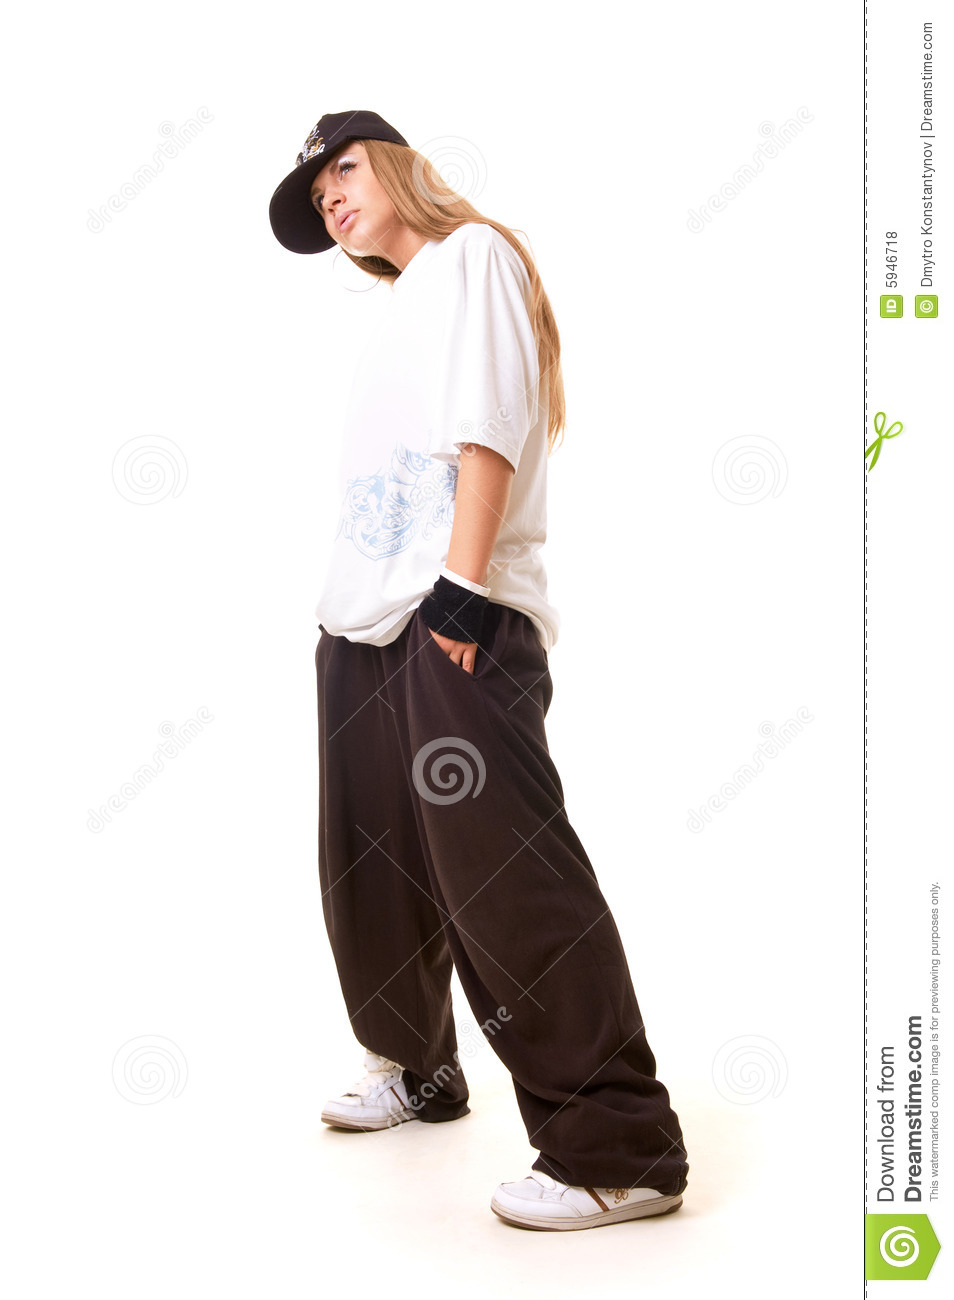 Tough Hip Hop Girl In Dance Pose Royalty-Free Stock Image -7890